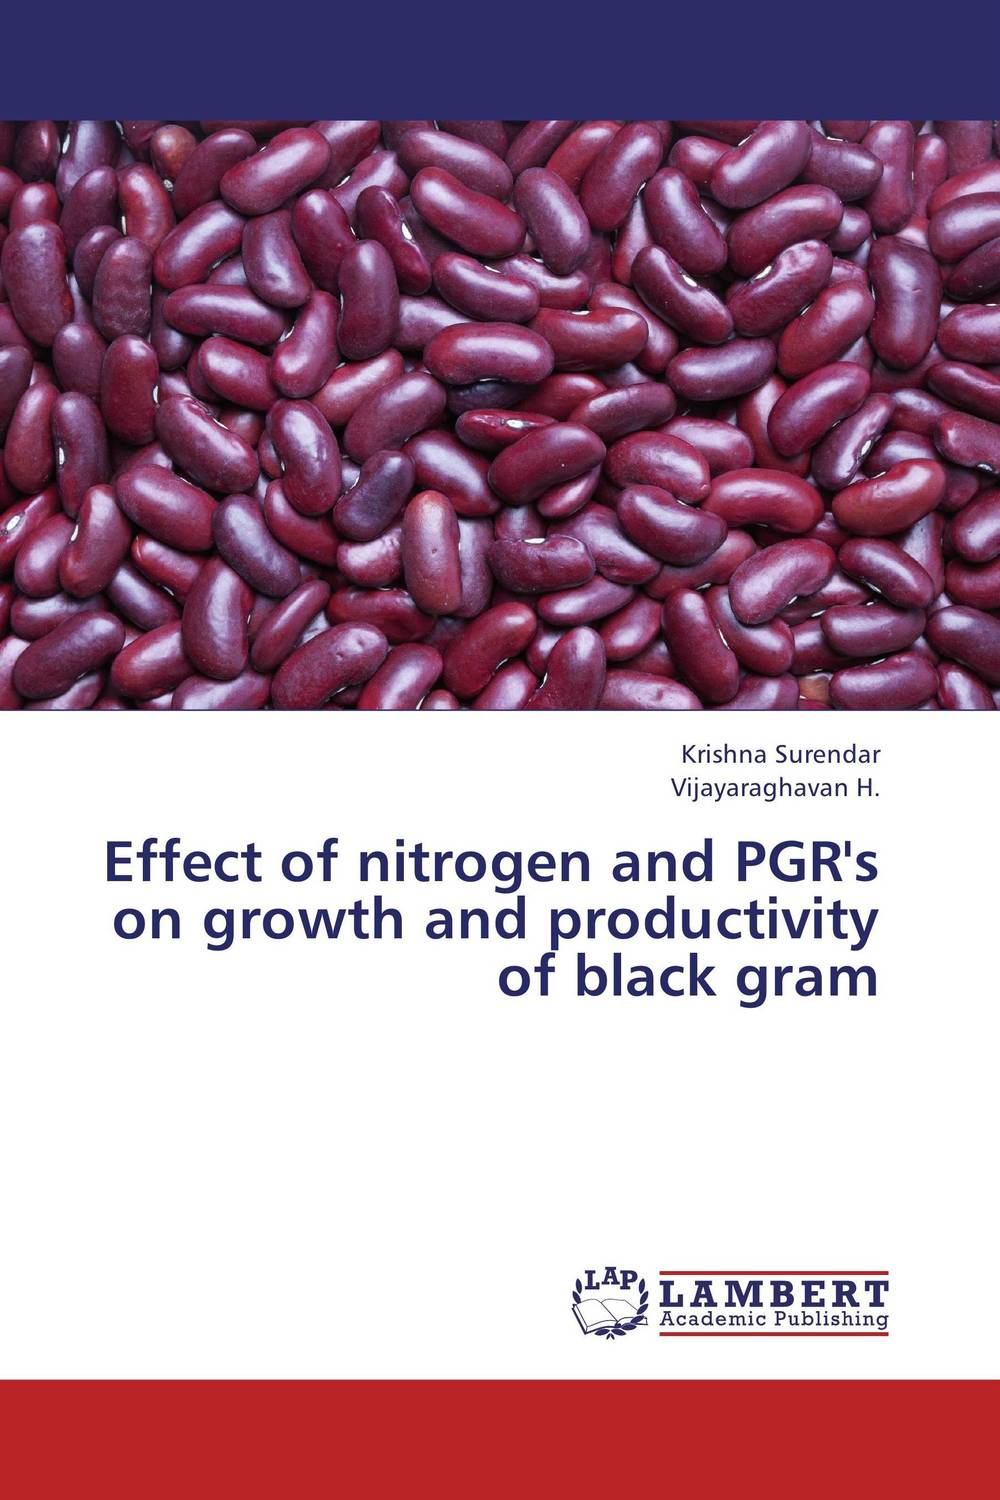 Effect of nitrogen and PGR's on growth and productivity of black gram effect of nitrogen and pgr s on growth and productivity of black gram